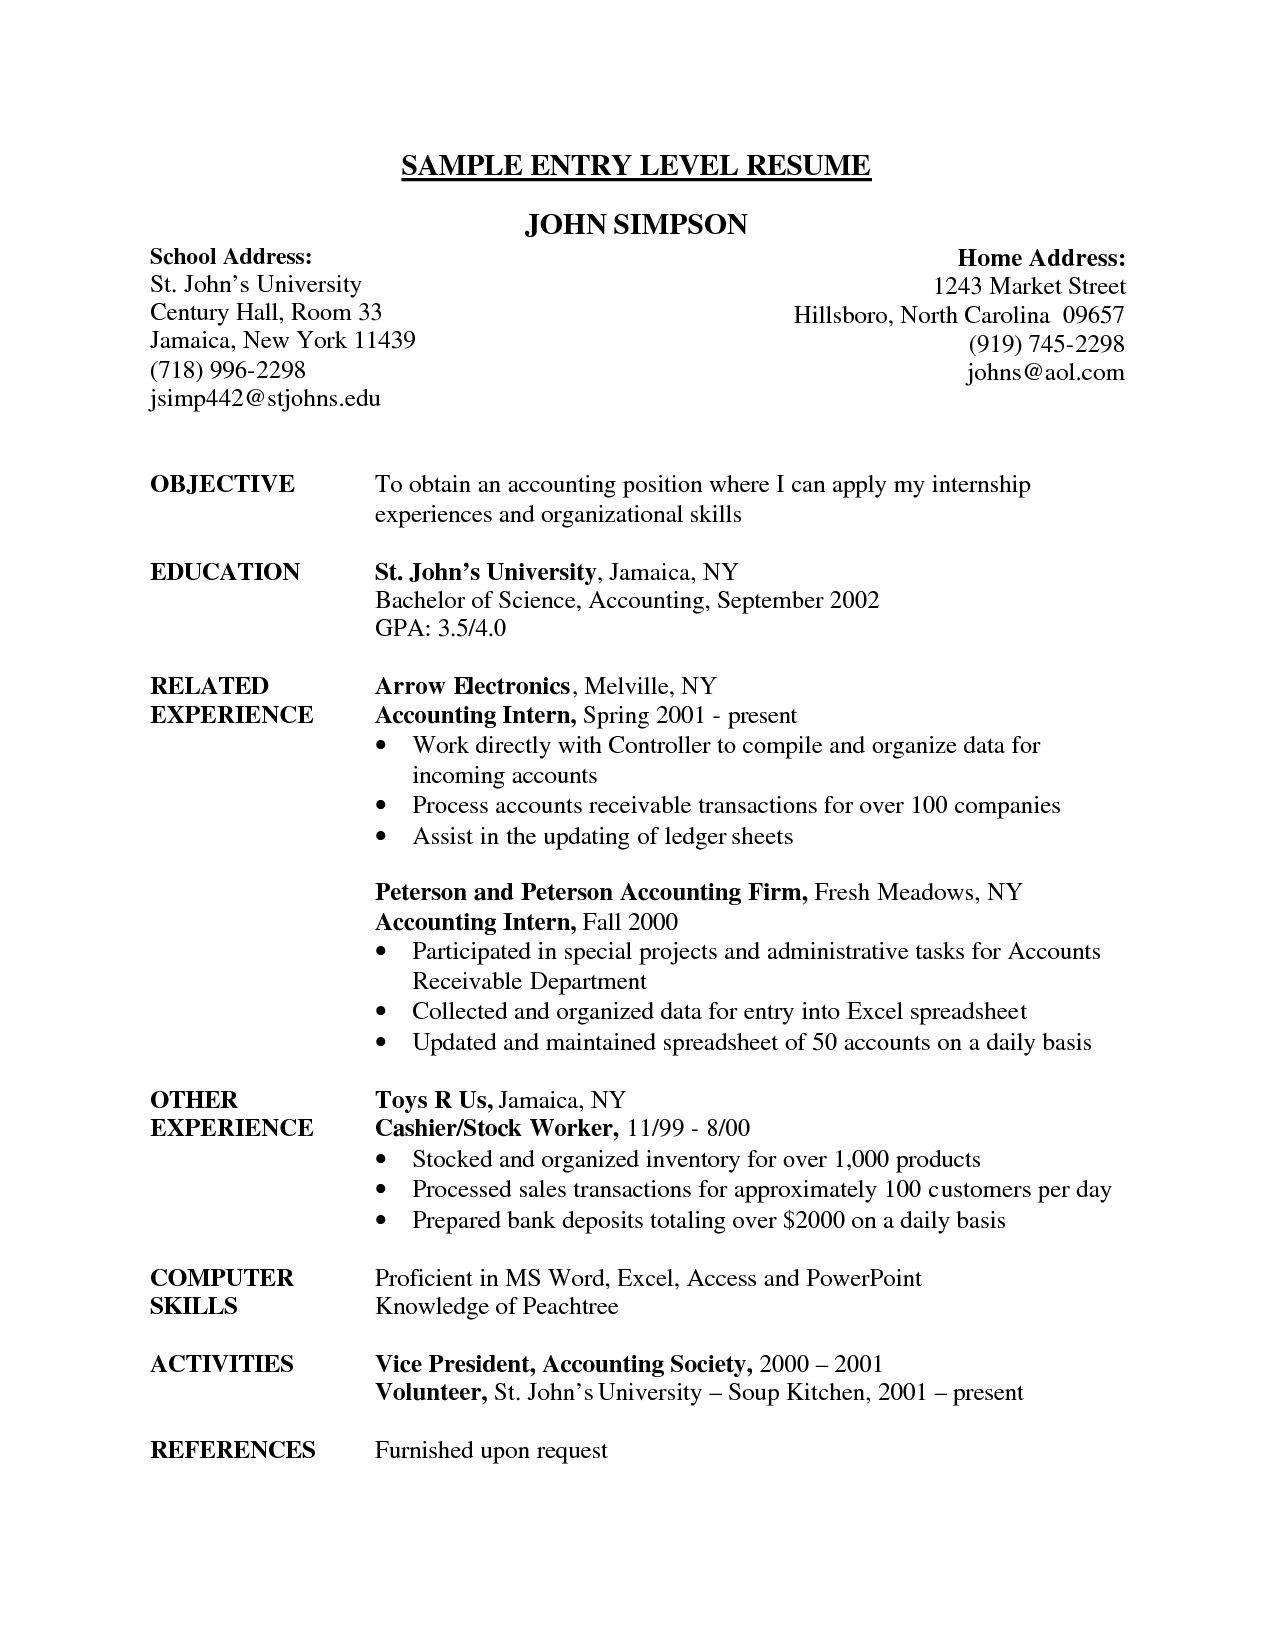 Technical Resume Examples Entry Level Resume Example Entry Level Job Resume Examples